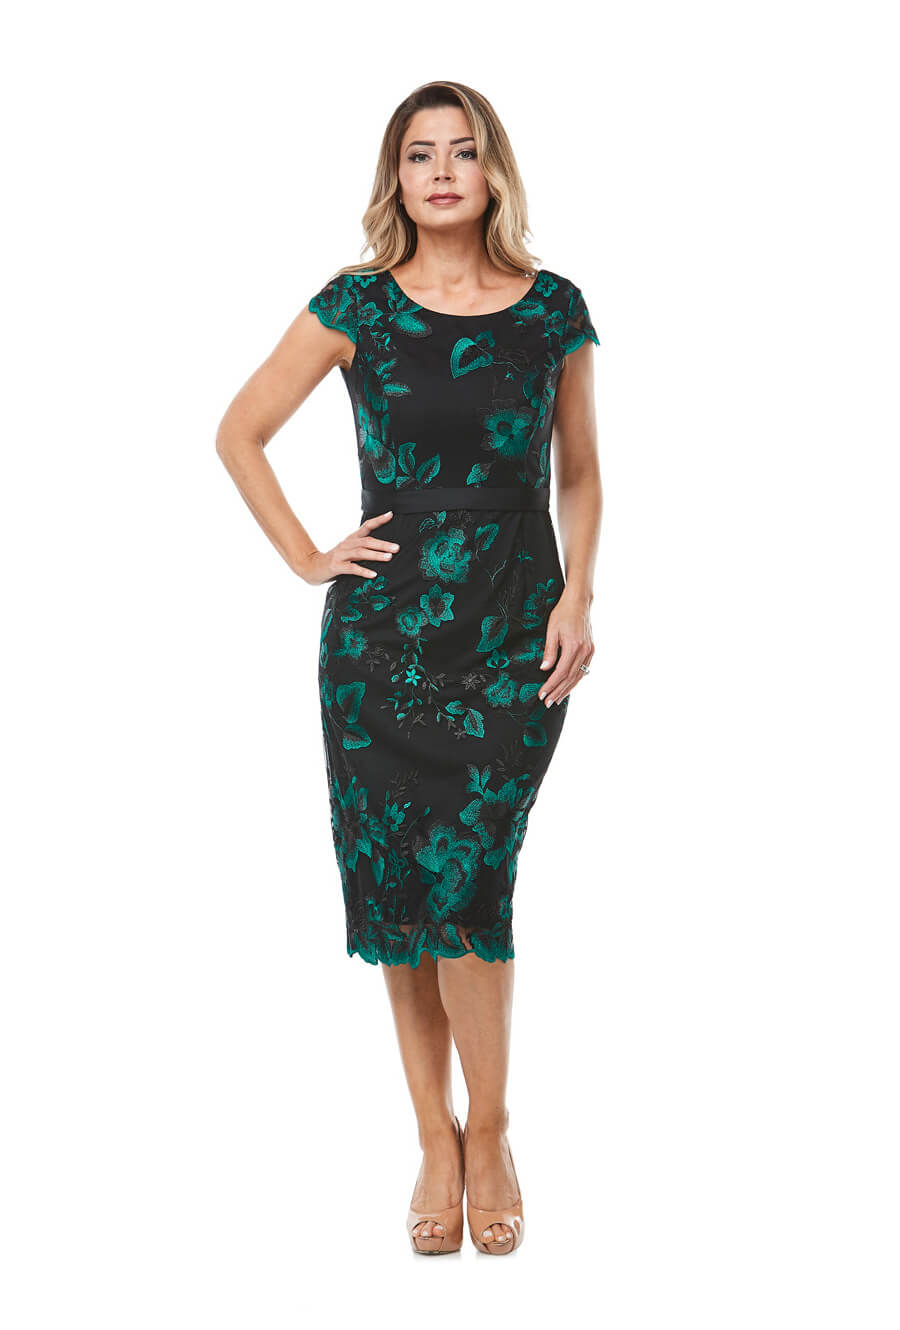 Mid length cocktail dress with cap sleeve, dark green embroidery & satin trim